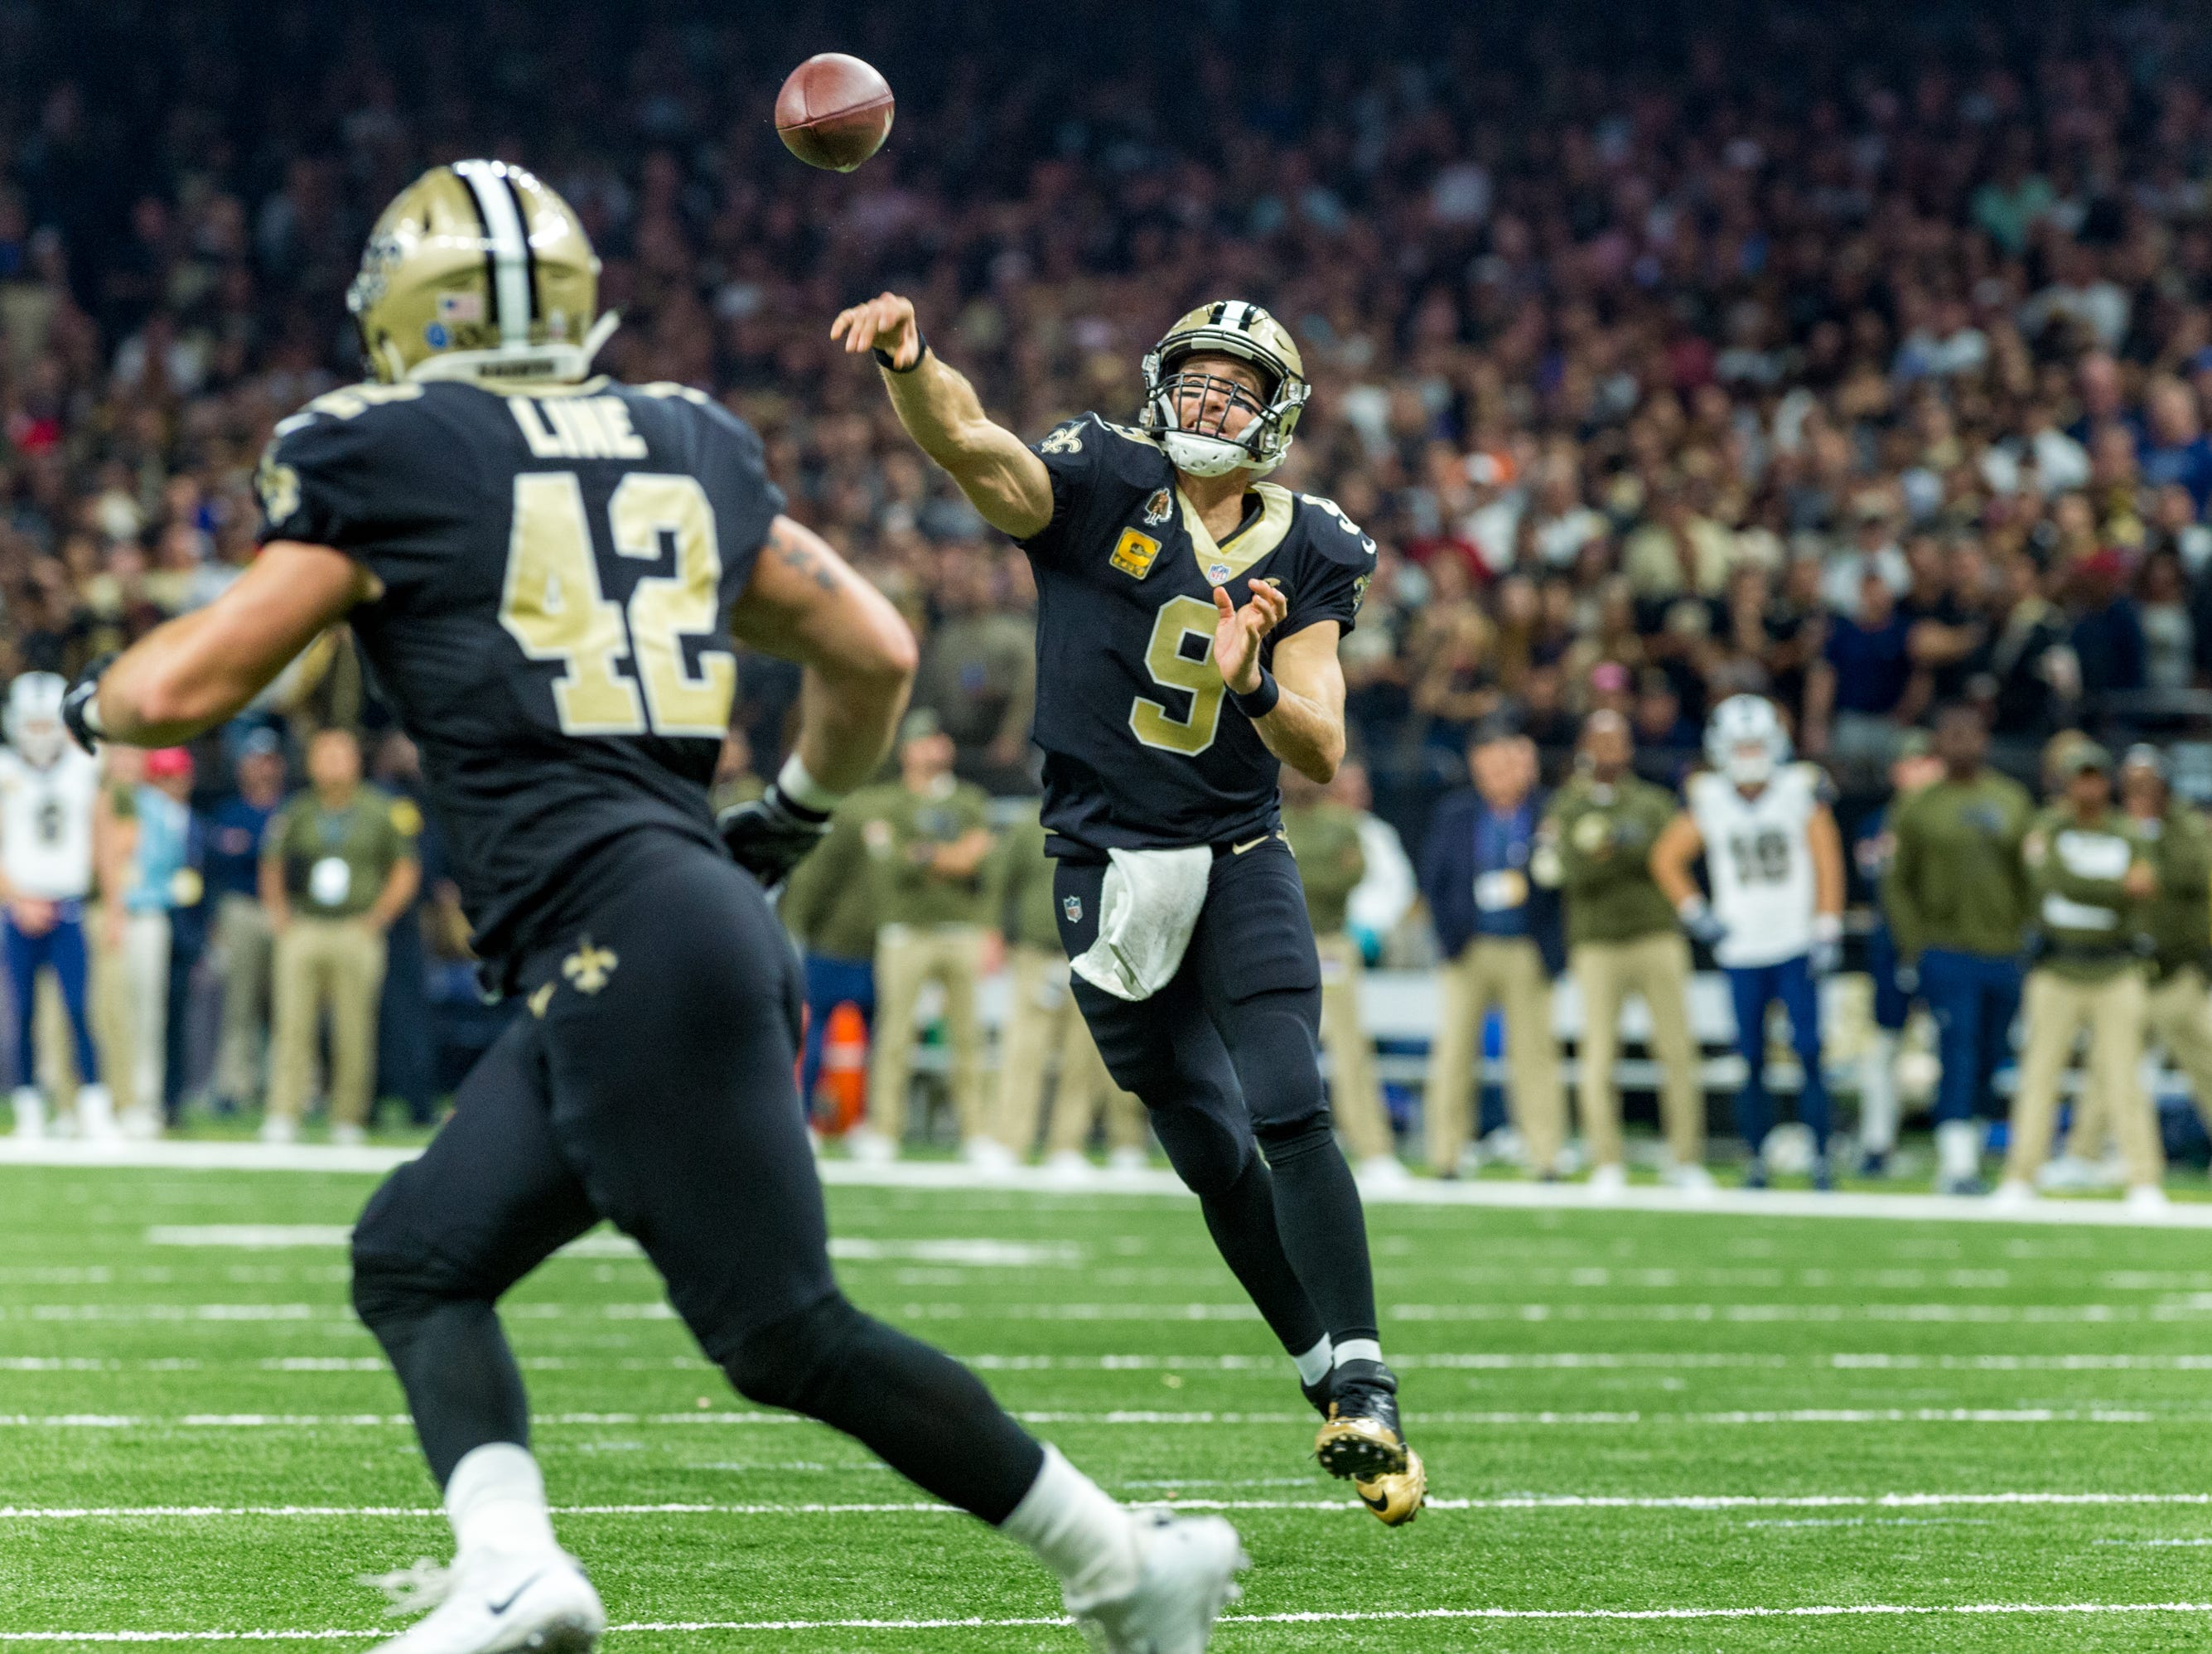 Saints quarterback Drew Brees throws a pass to Zach Line during the NFL football game between the New Orleans Saints and the Los Angeles Rams on Sunday, Nov. 4, 2018.